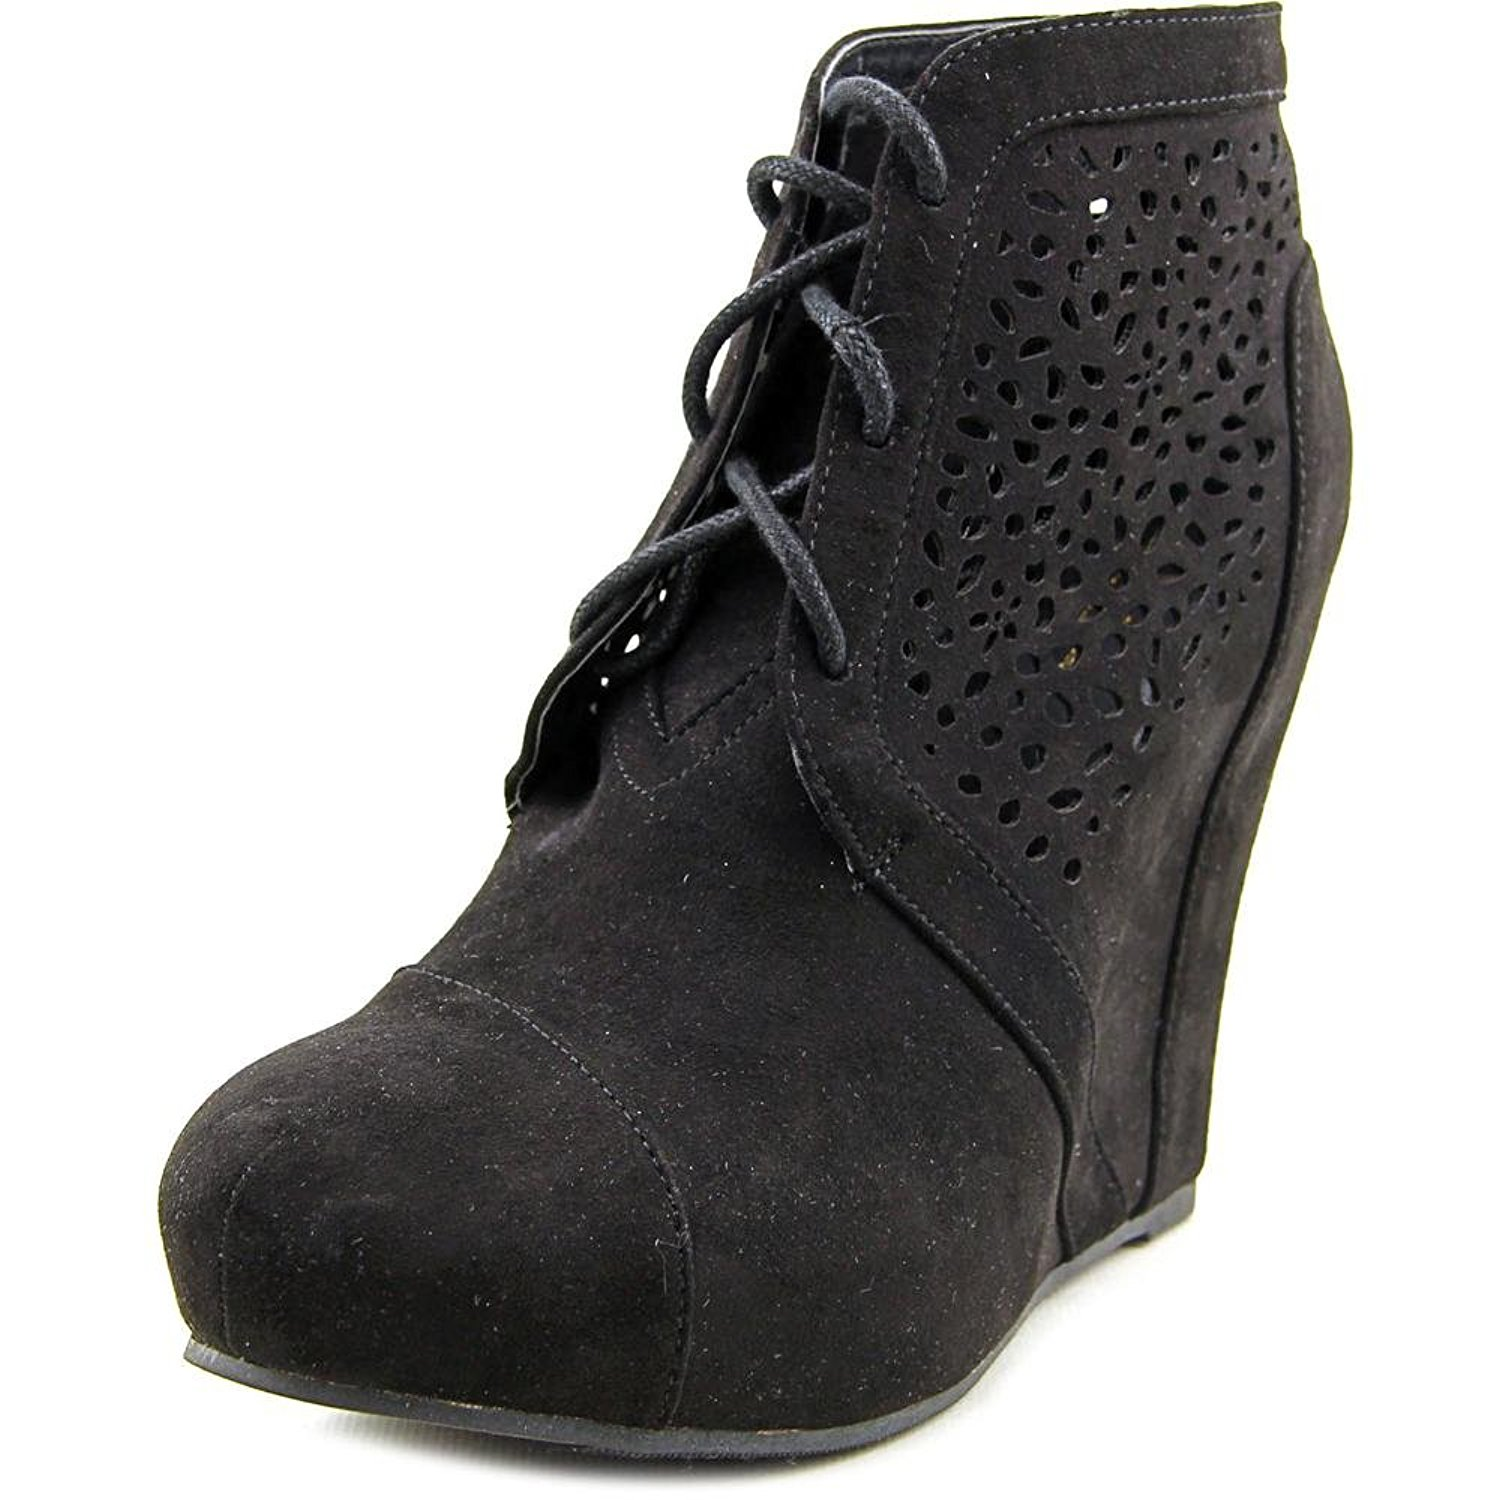 523ebfba2b63 Shï by Journeys Womens FREE SPIRIT Closed Toe Ankle Fashion Boots